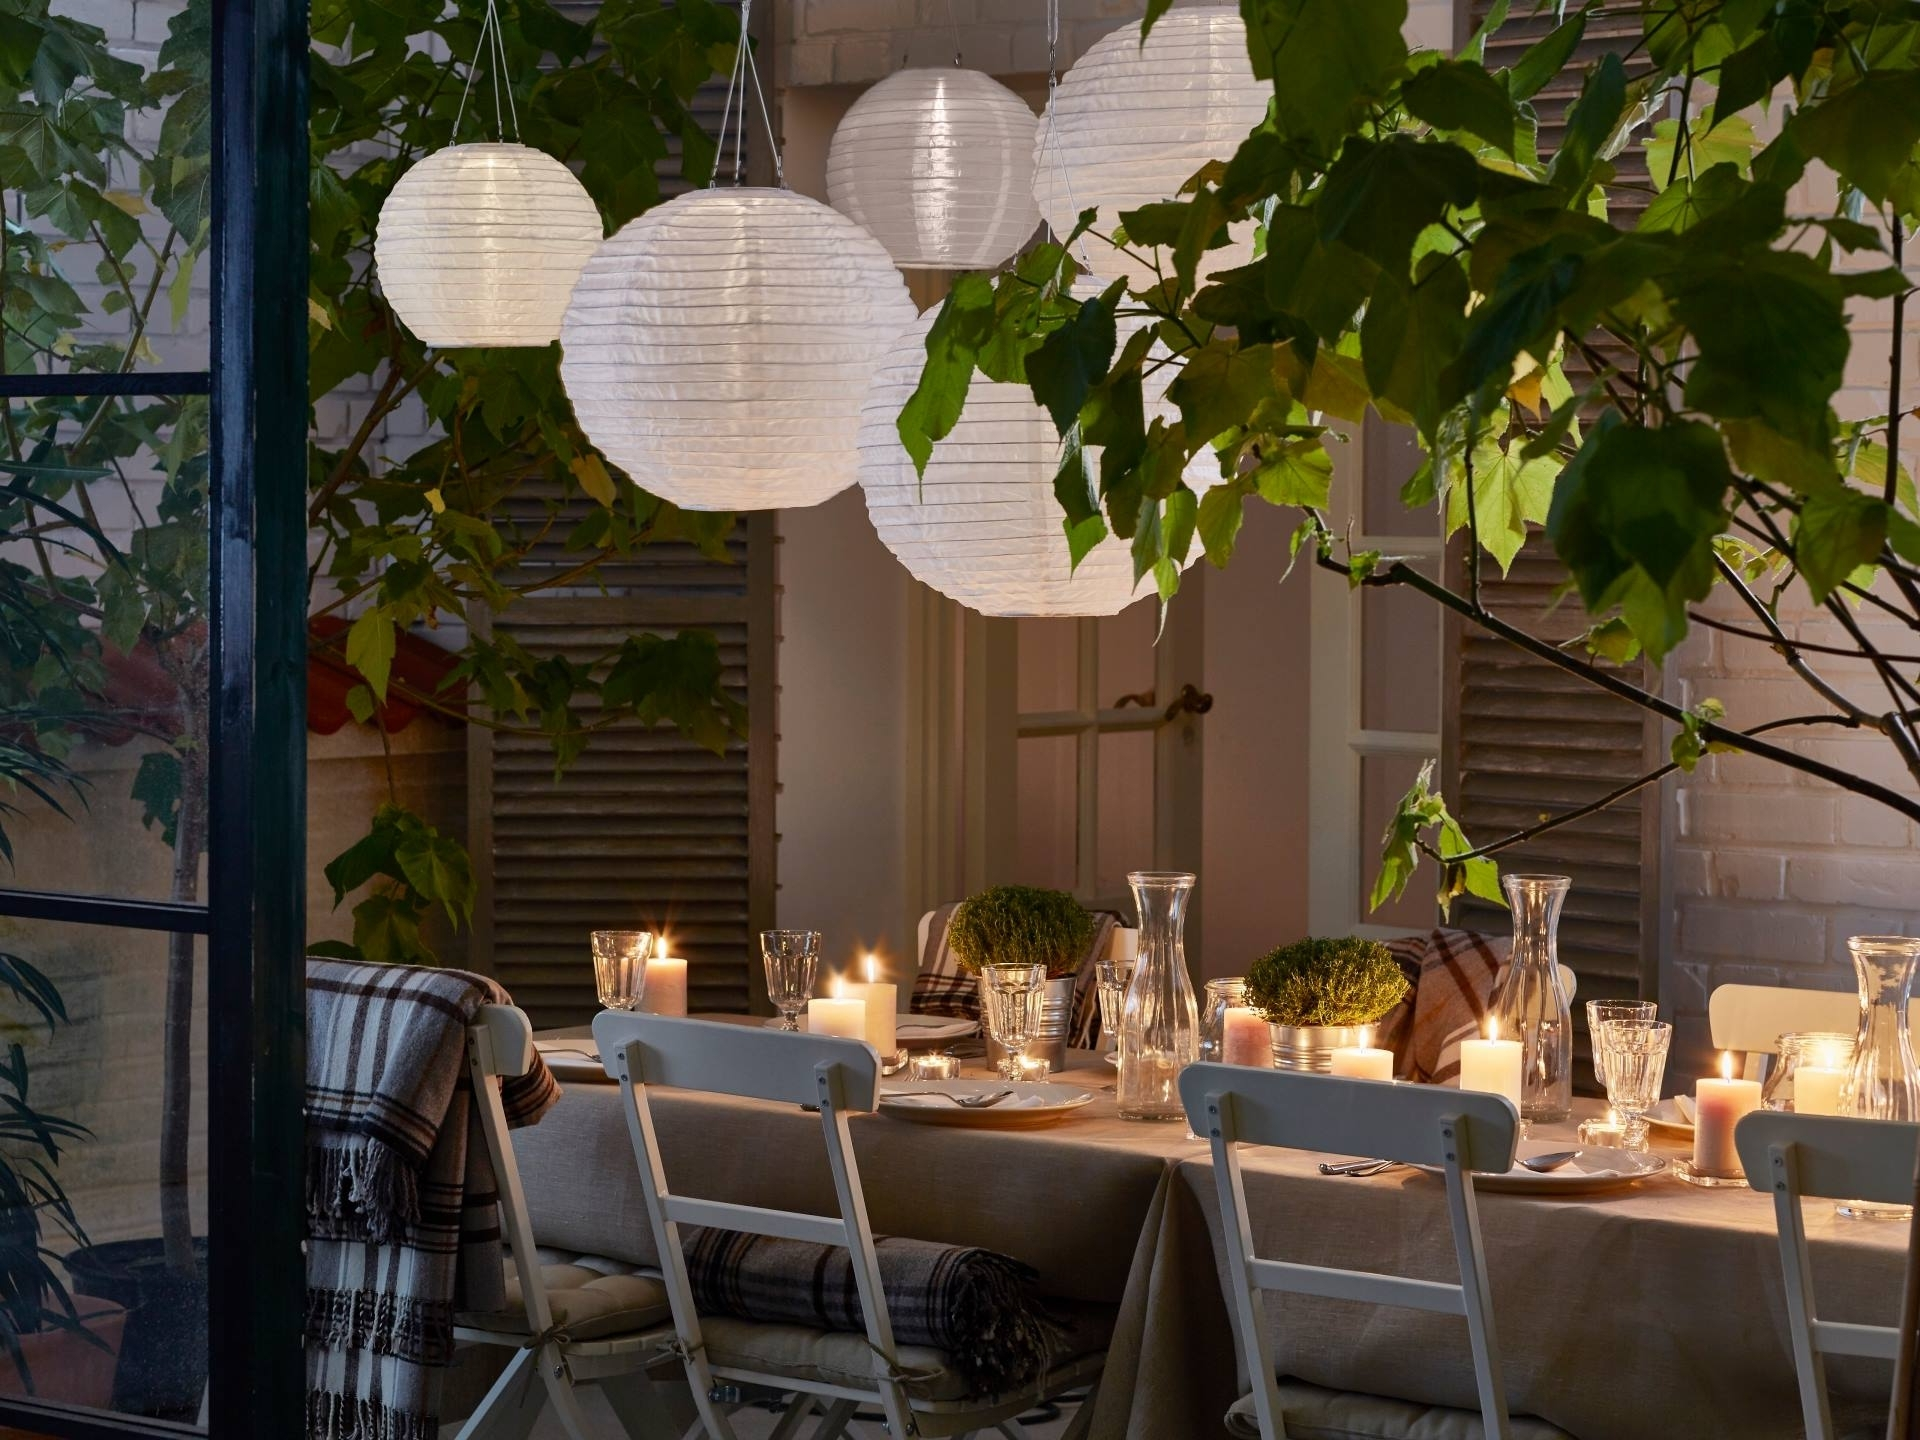 Popular Diy : Ways Decorate With Paper Lanterns Outdoor Lantern Party Lights In Outdoor Hanging Paper Lanterns (View 12 of 20)